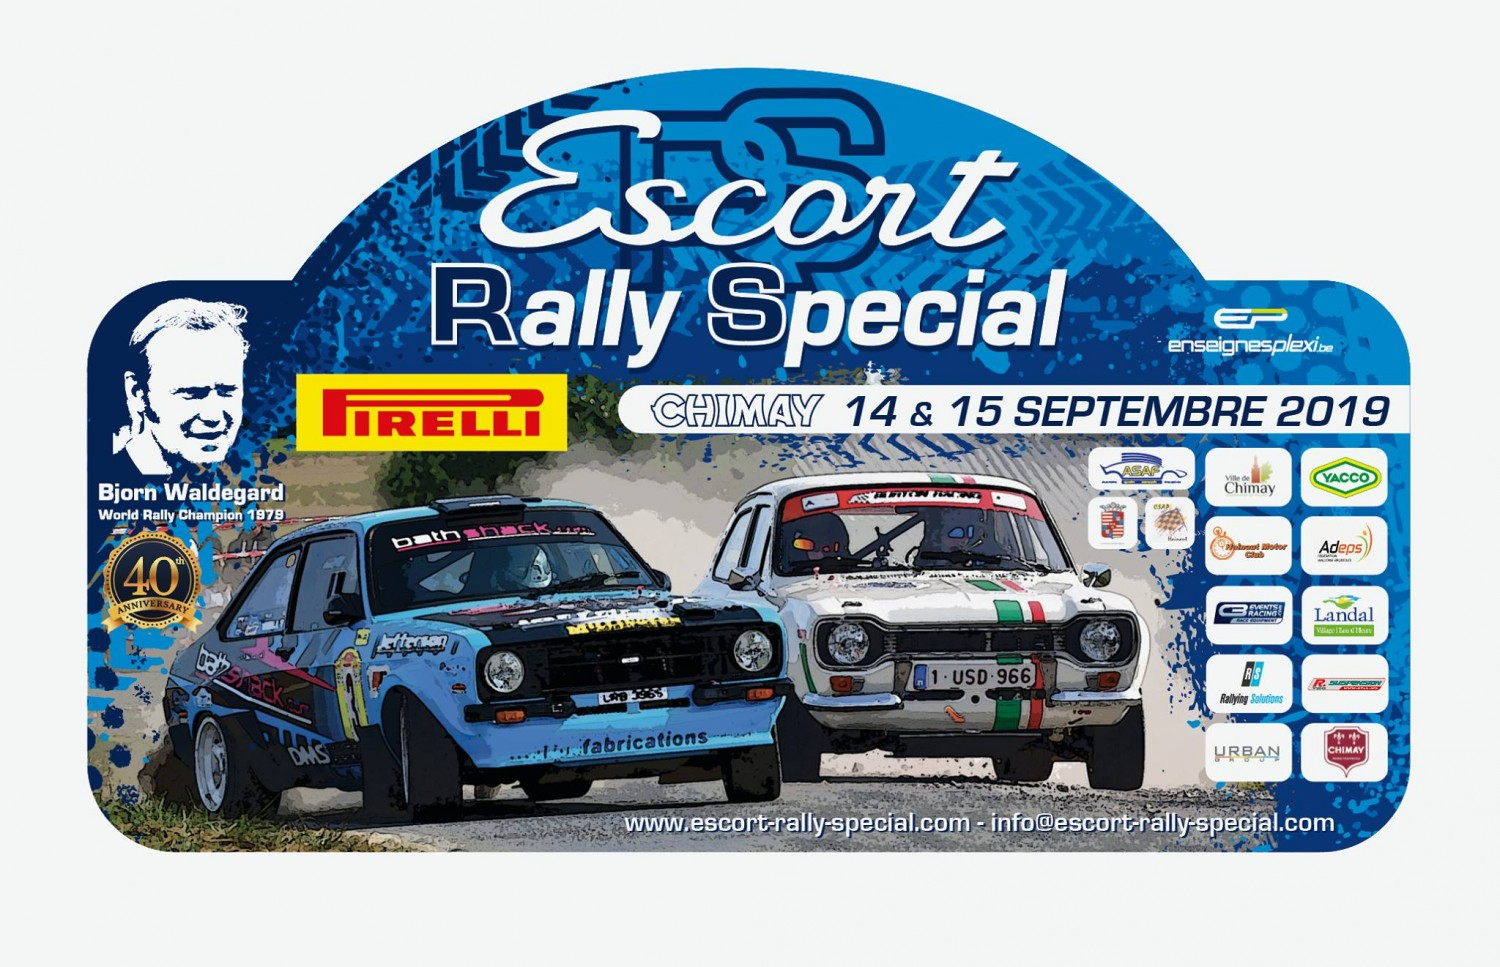 De Escort Rally Special is terug!